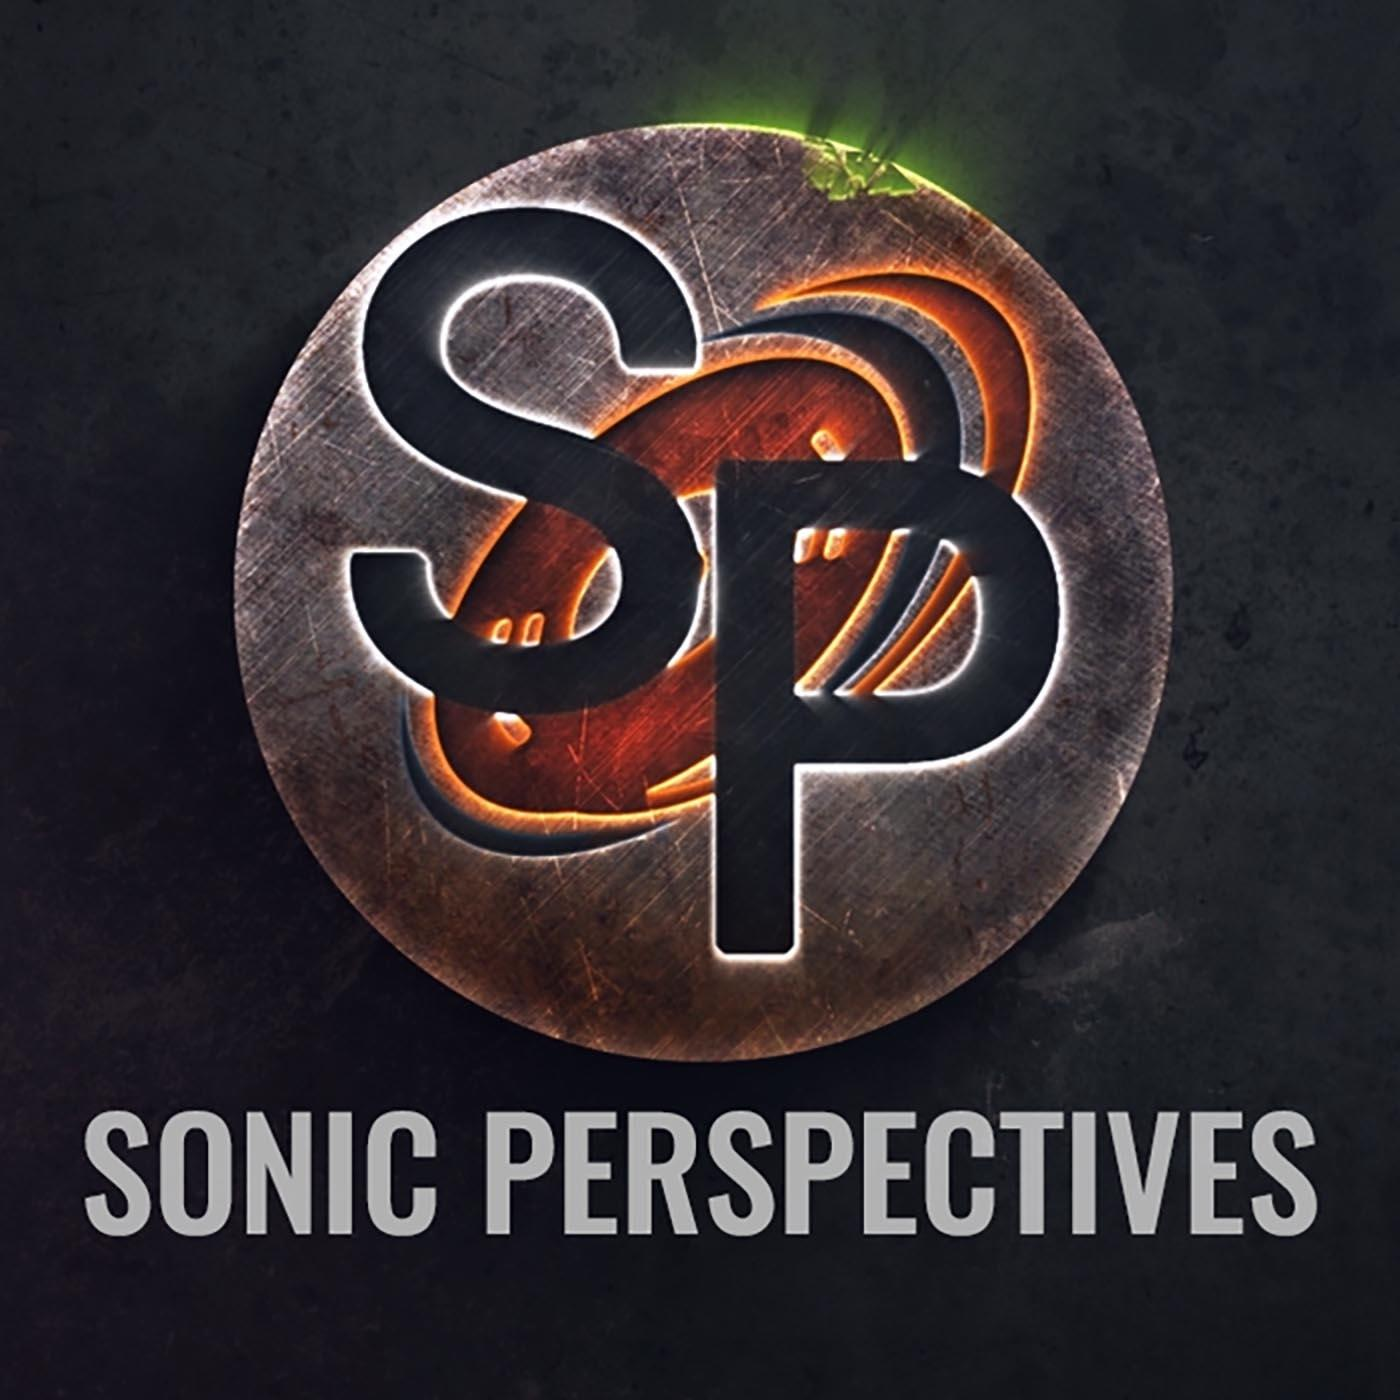 Sonic Perspectives